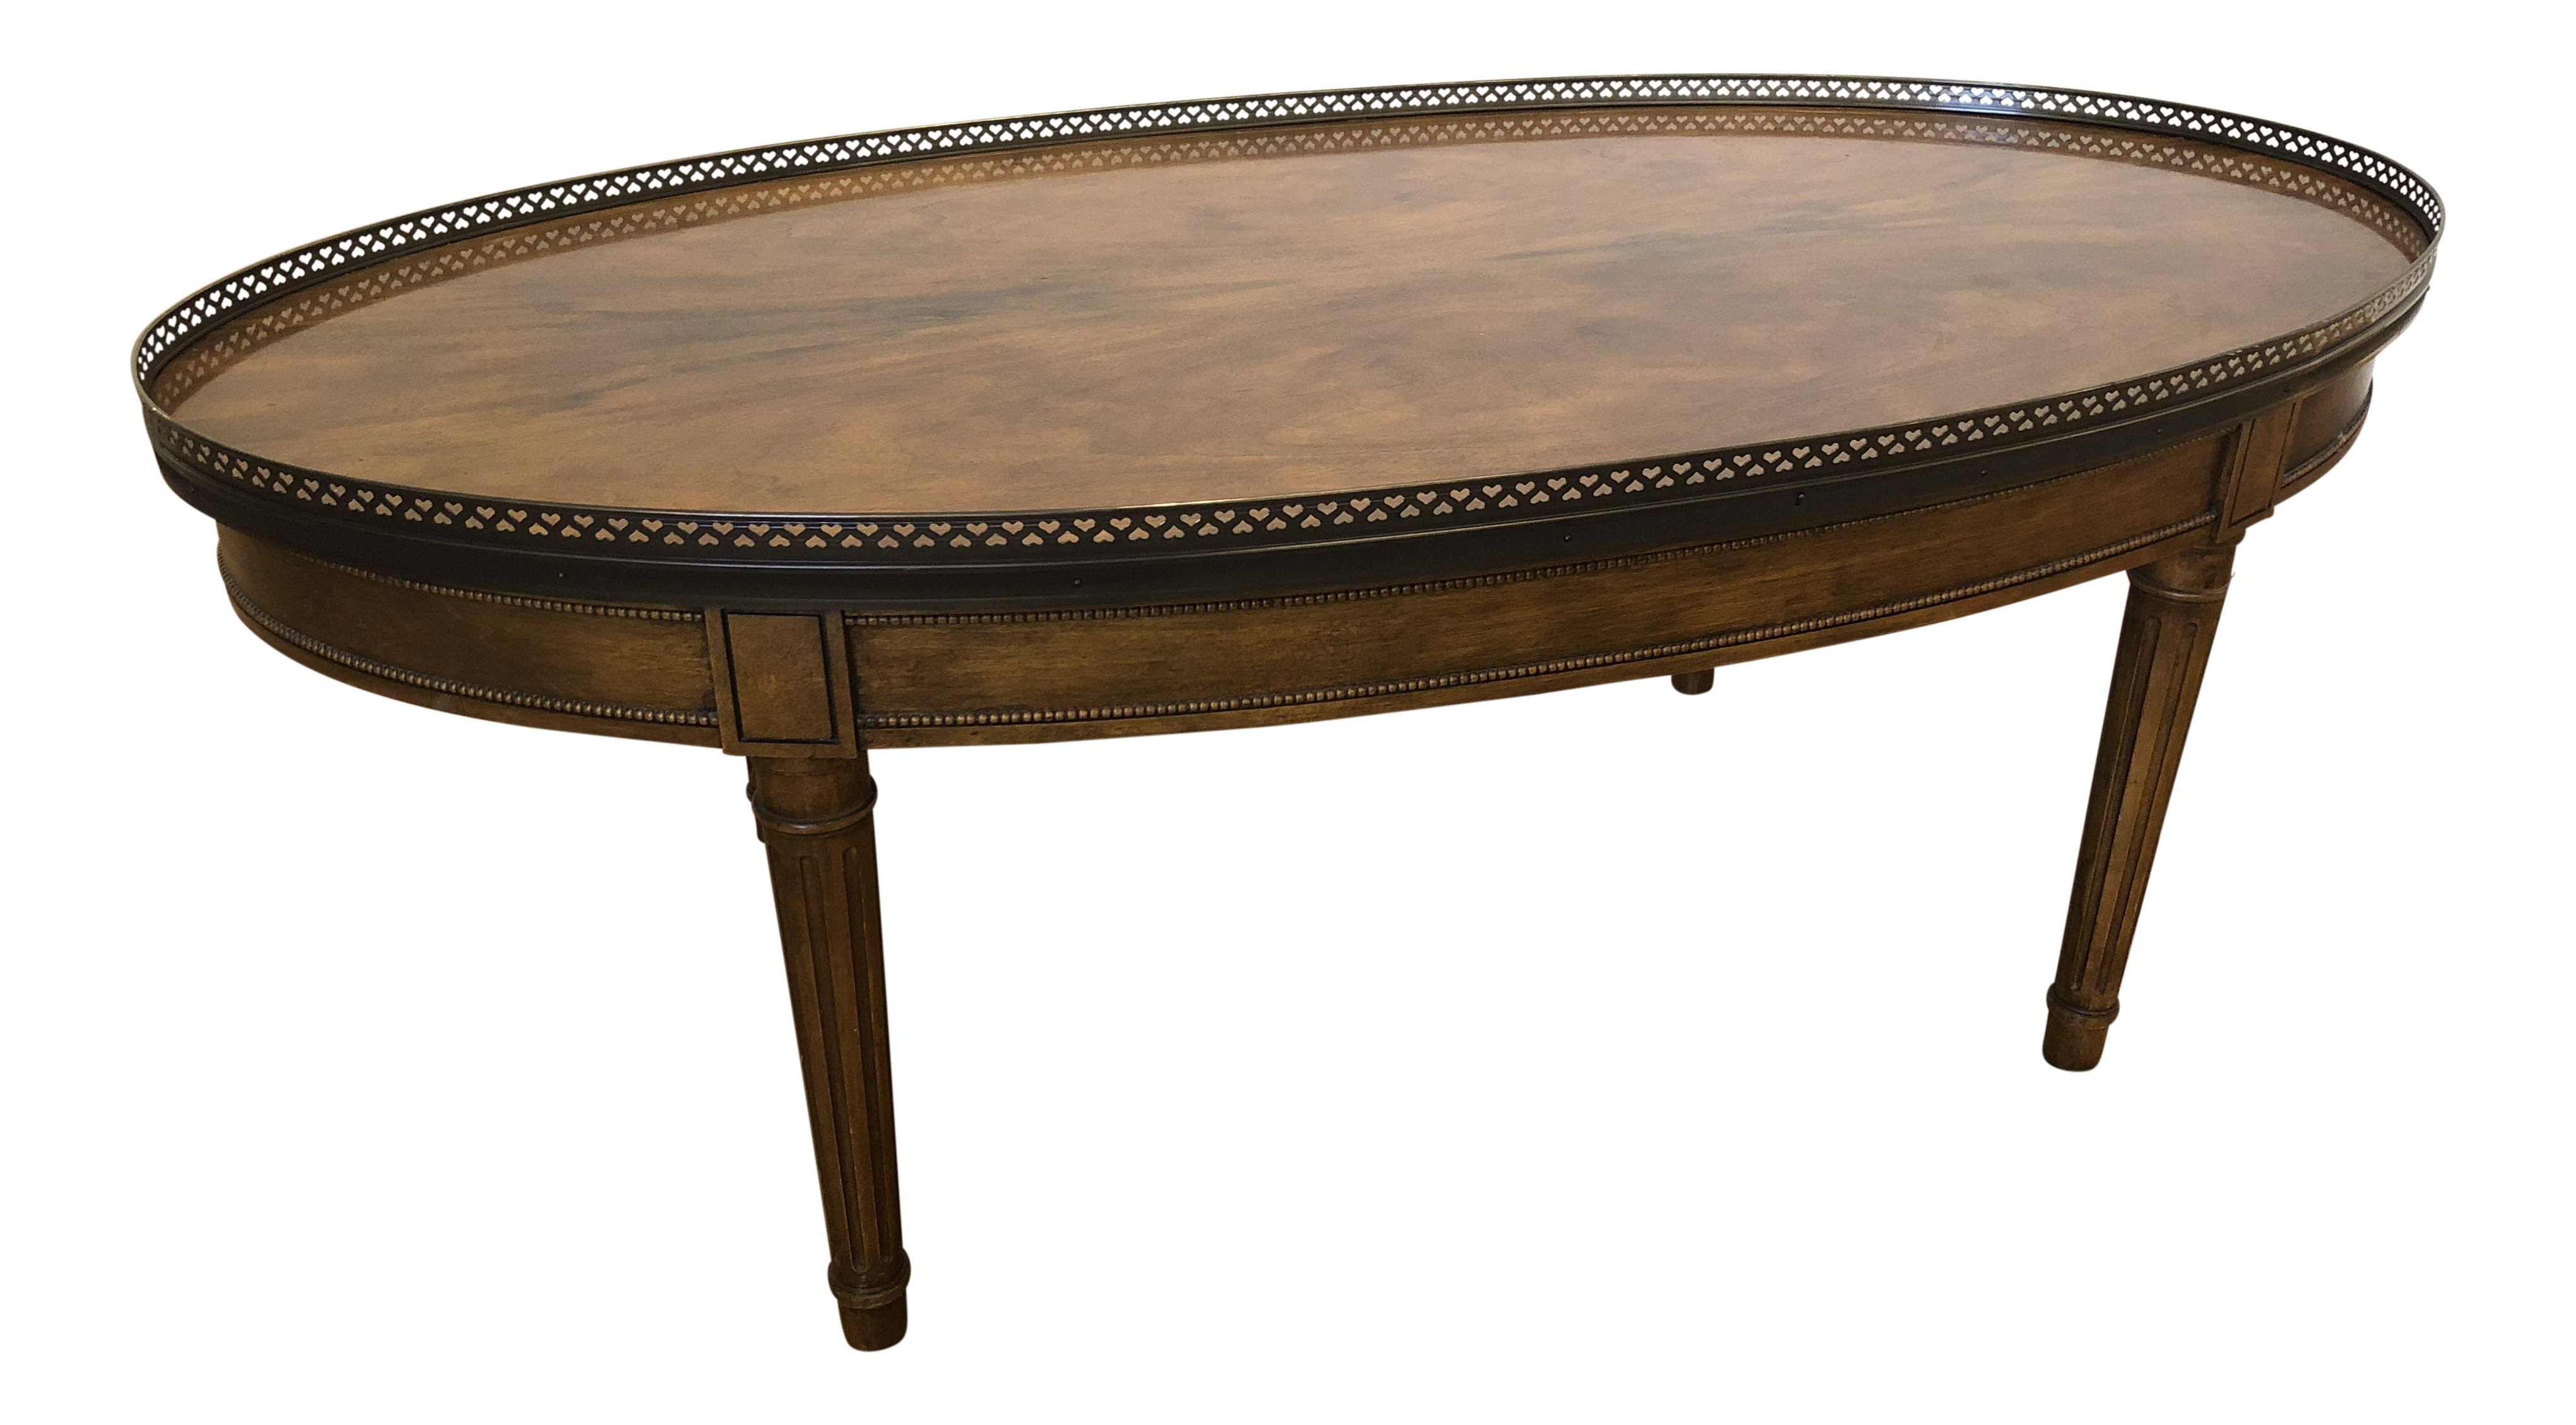 Baker Furniture Regency Style Oval Coffee Table Home Decor Sites